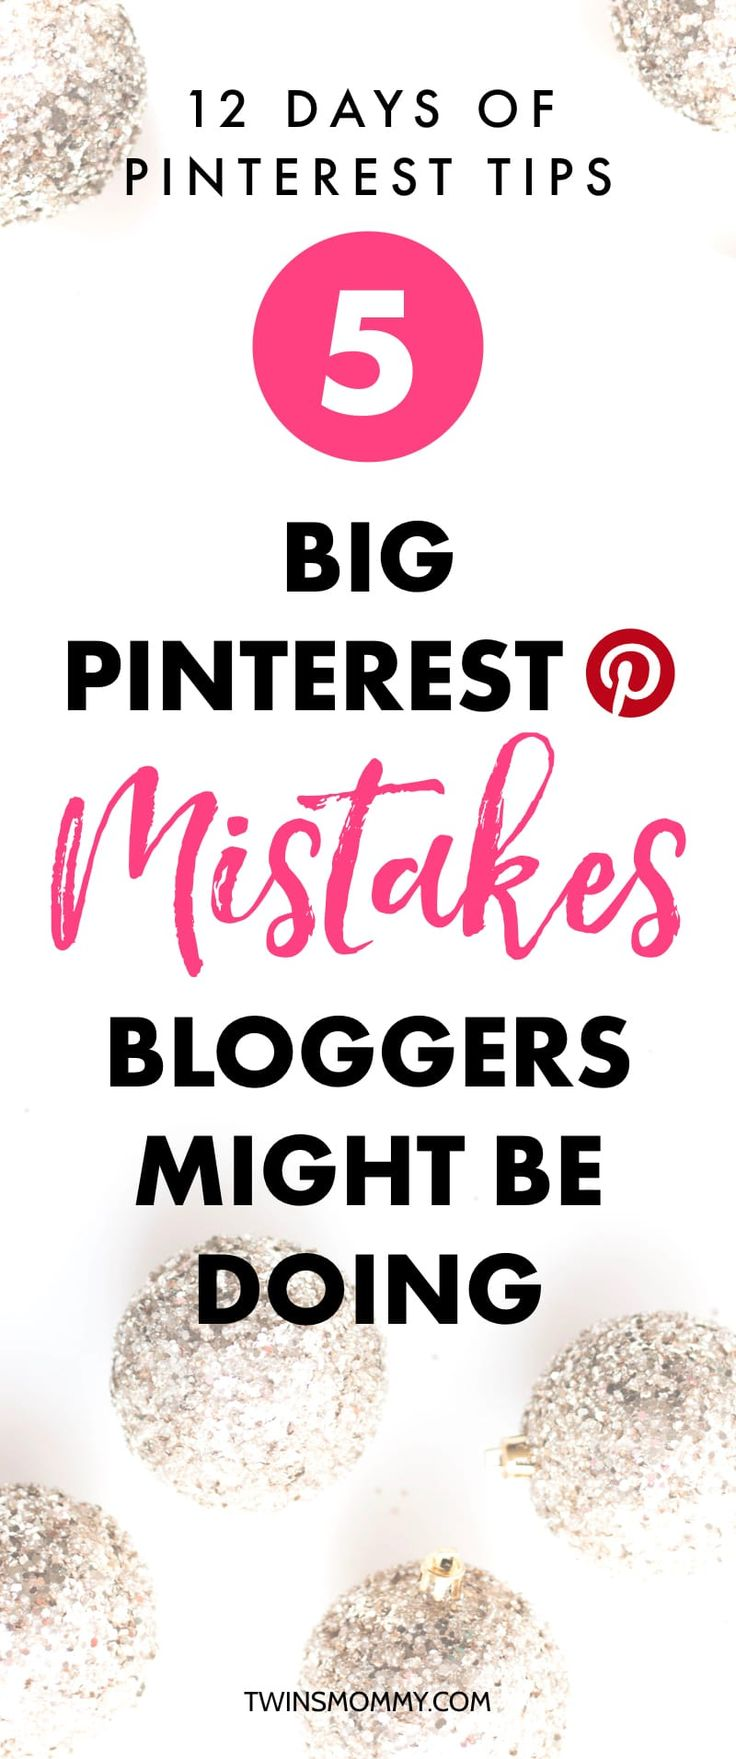 5 Big Pinterest Mistakes Bloggers Might Be Doing #pinterest #pinterestmarketing #pinteresttips